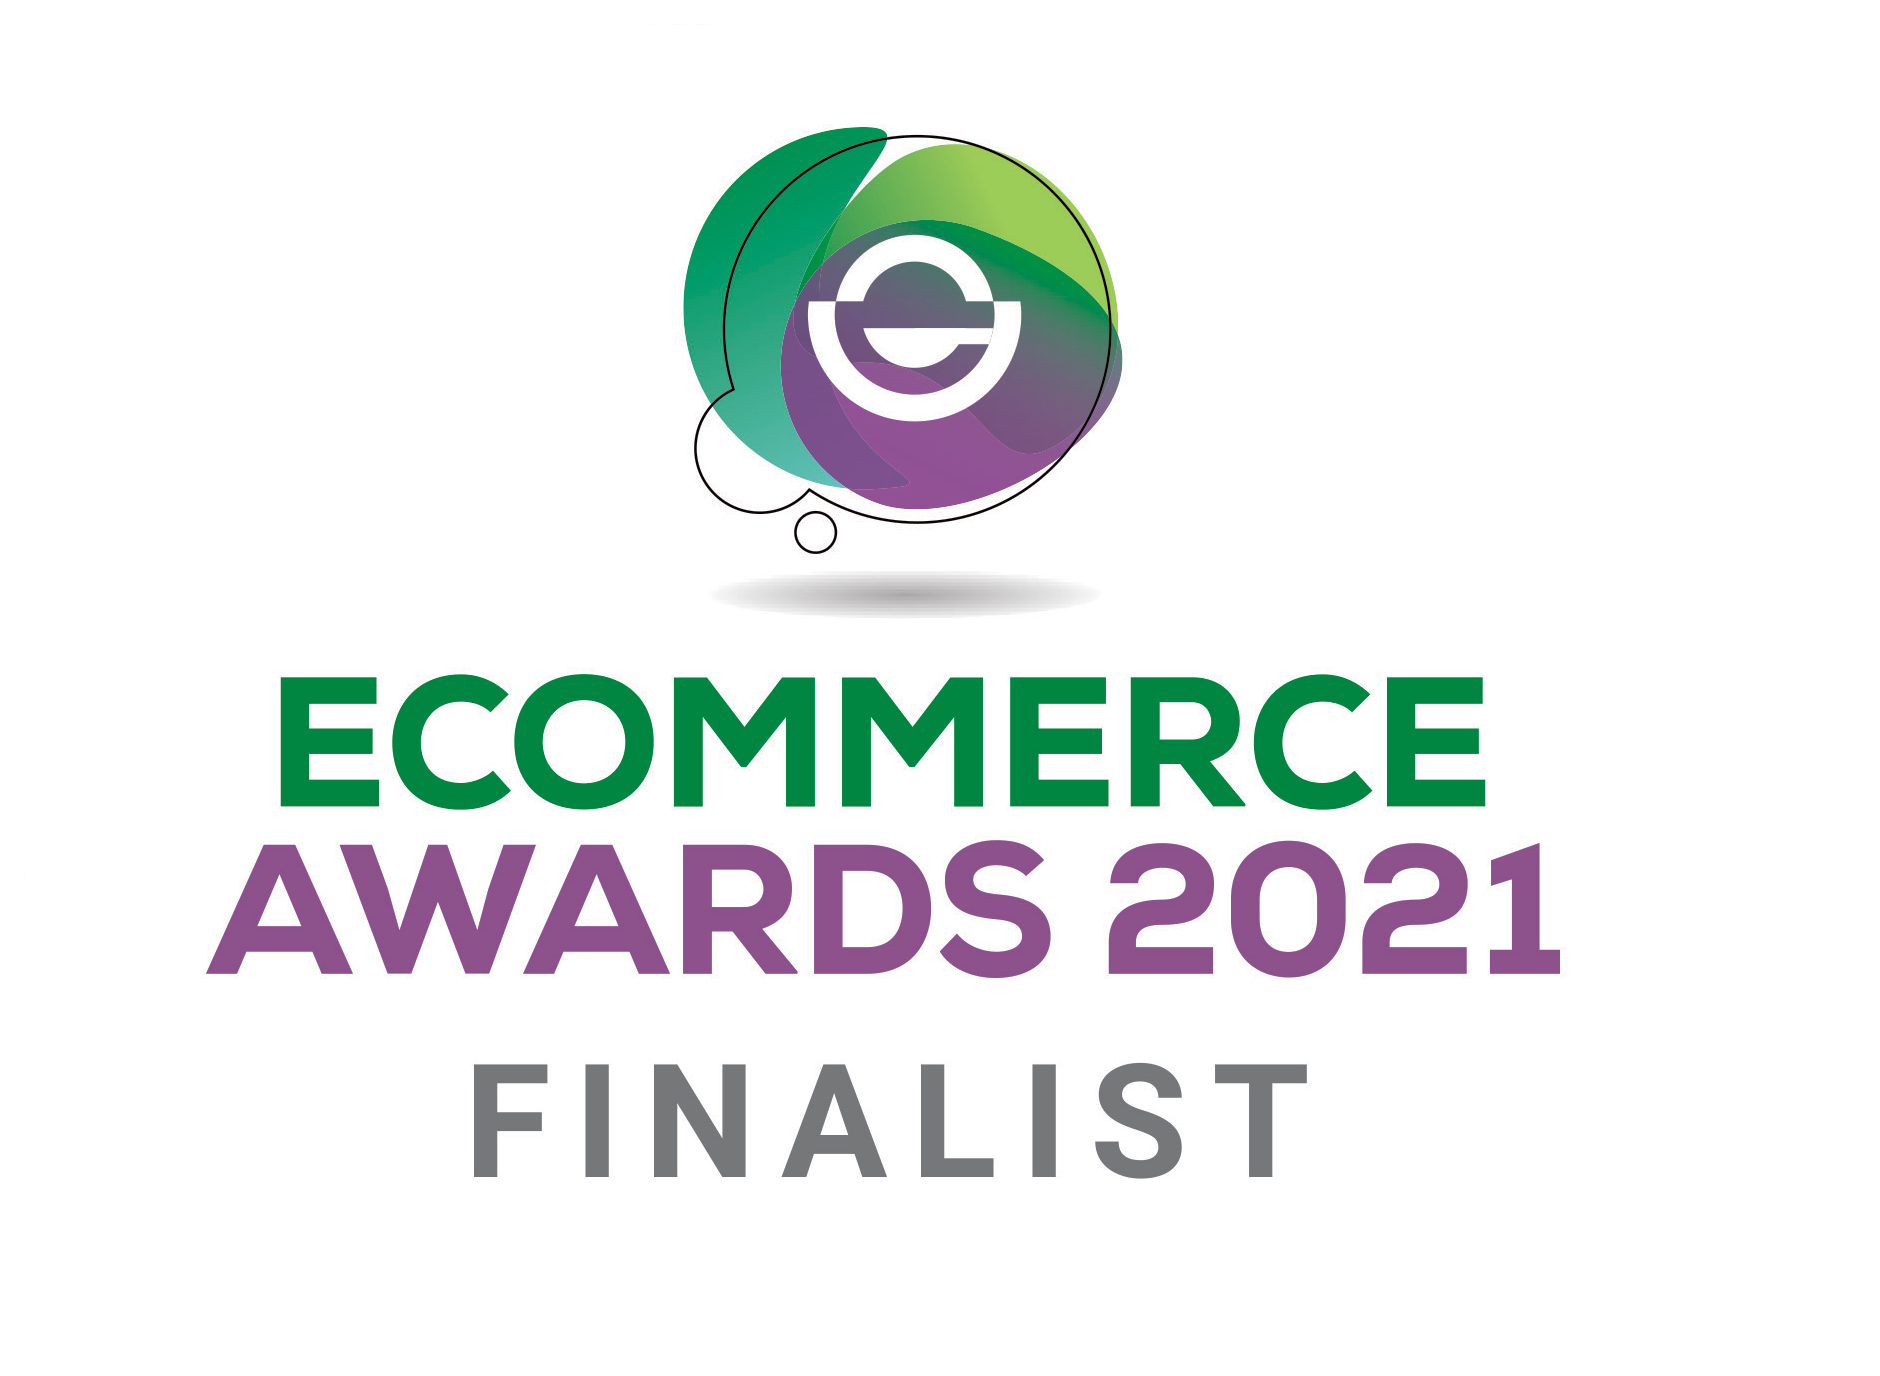 The Pixel Finalists in eCommerce Awards 2021